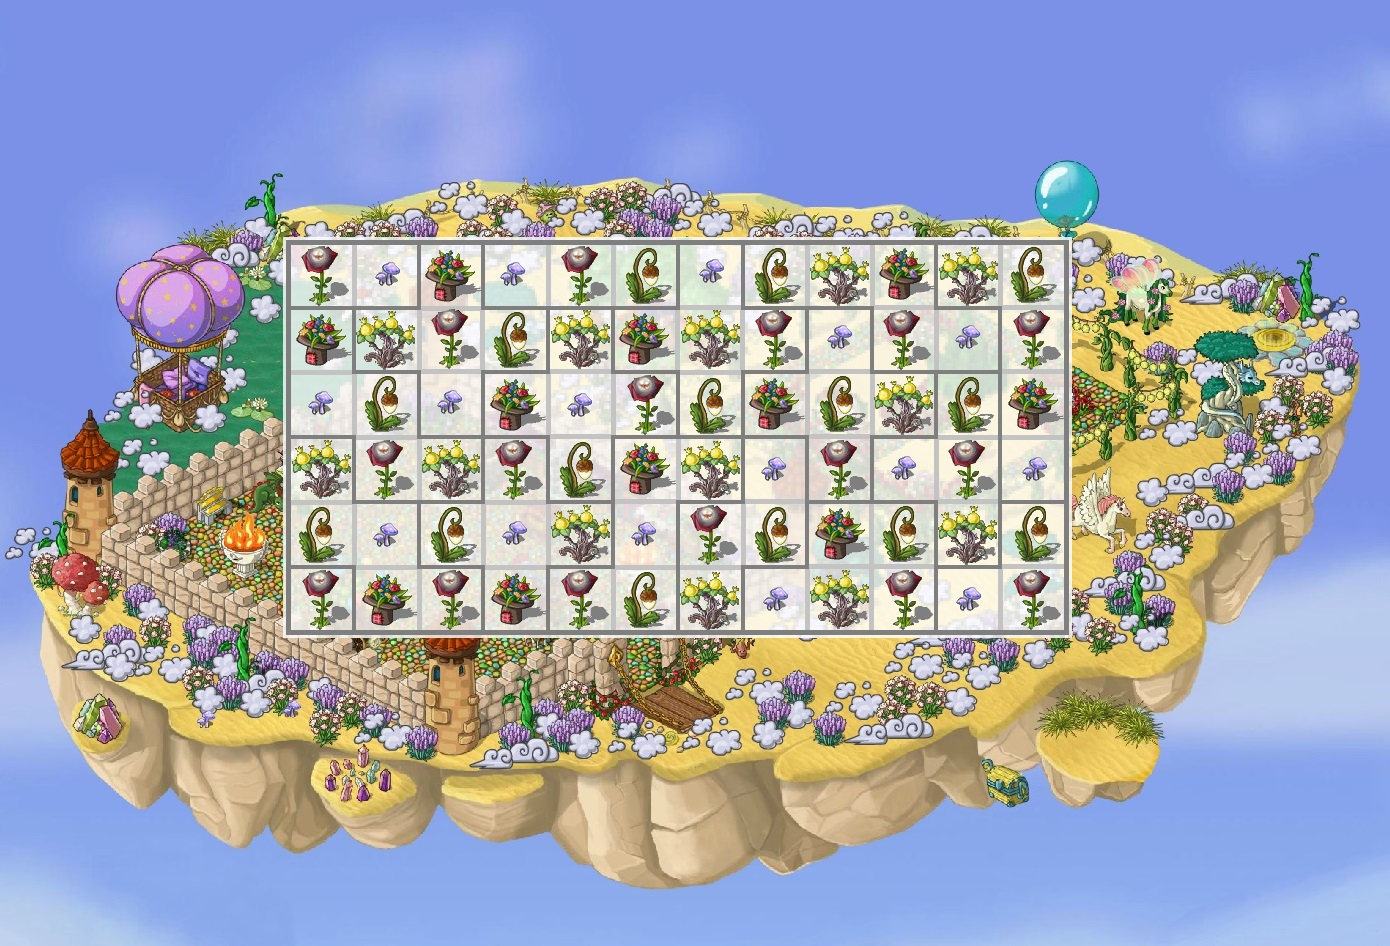 Name:  Giftbox Puzzler 2020 Fairytale, solution.jpg Views: 15 Size:  488.7 KB